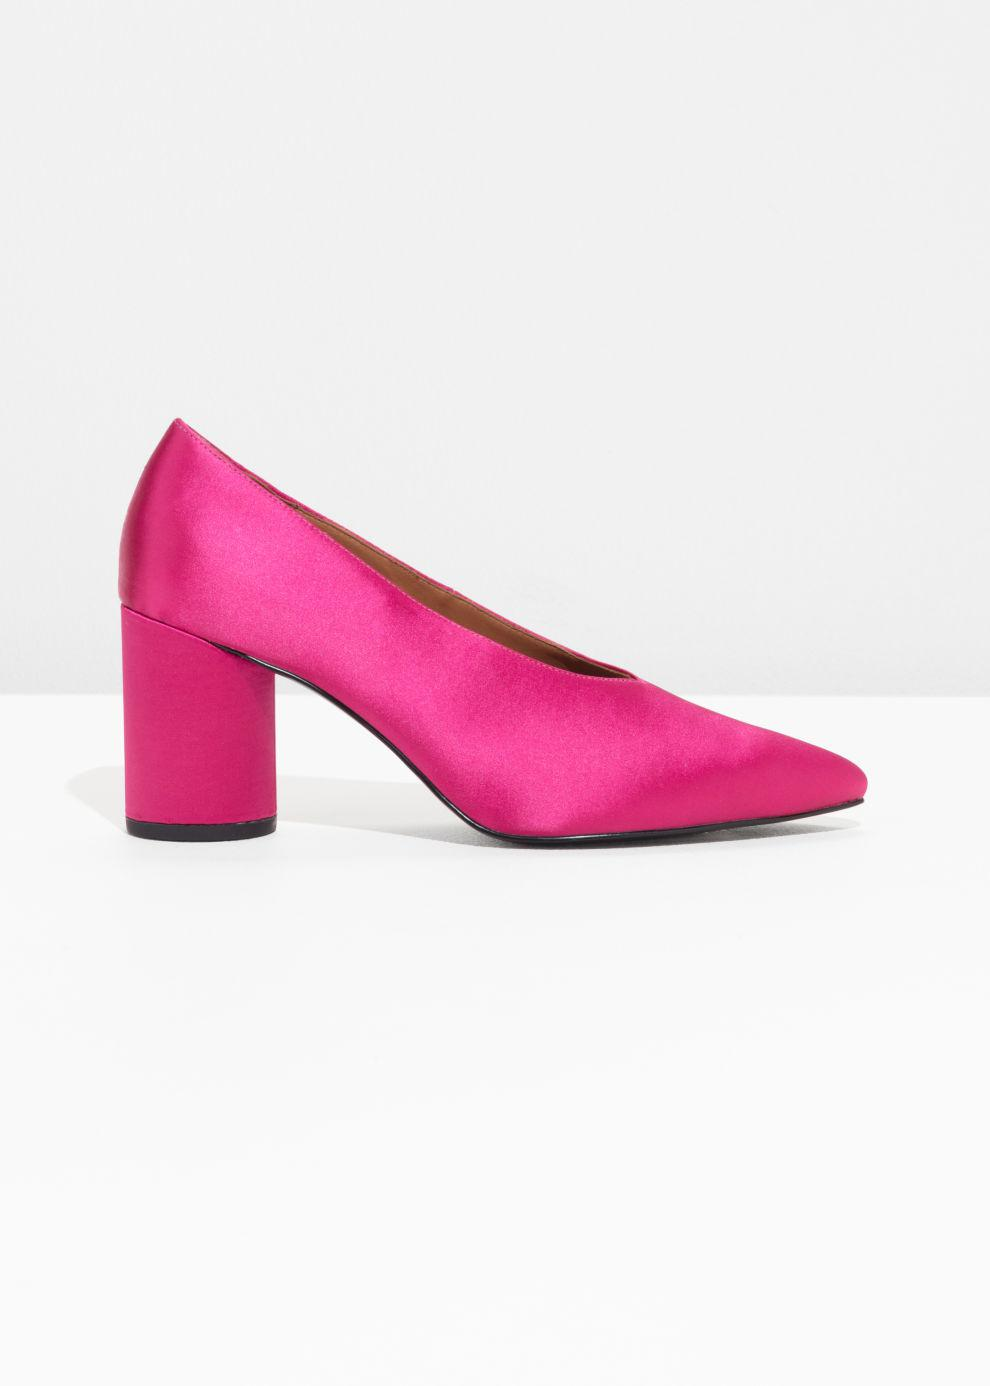 \u0026 Other Stories Satin Pumps in Pink - Lyst